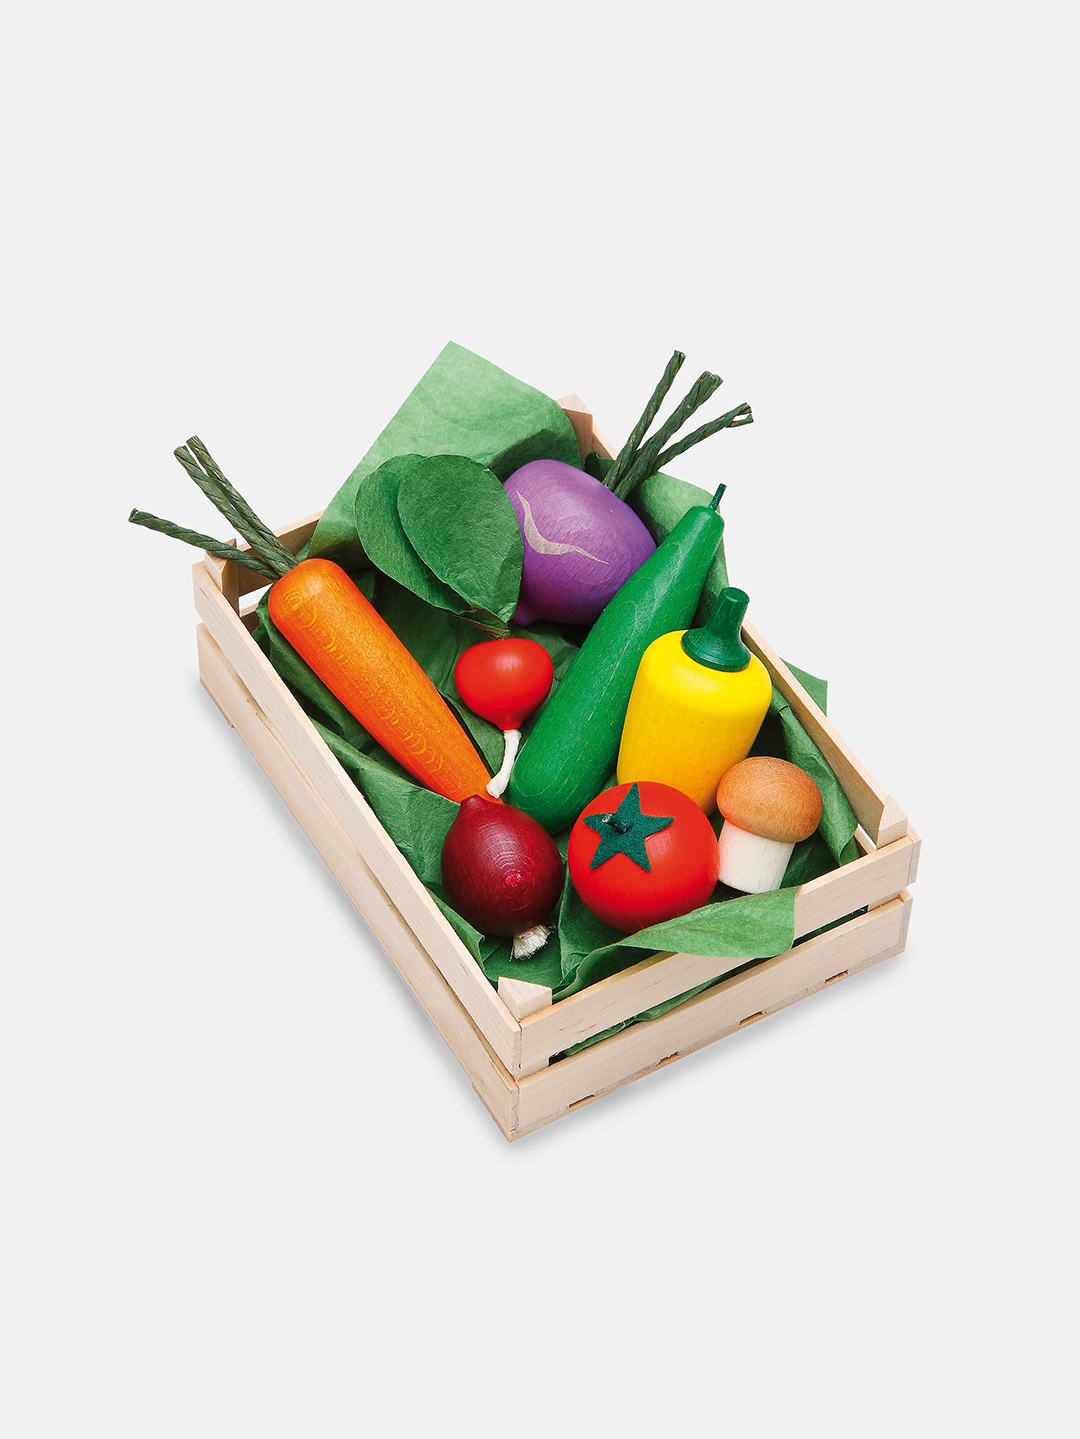 Wooden Vegetables Play Food Set Moon Picnic